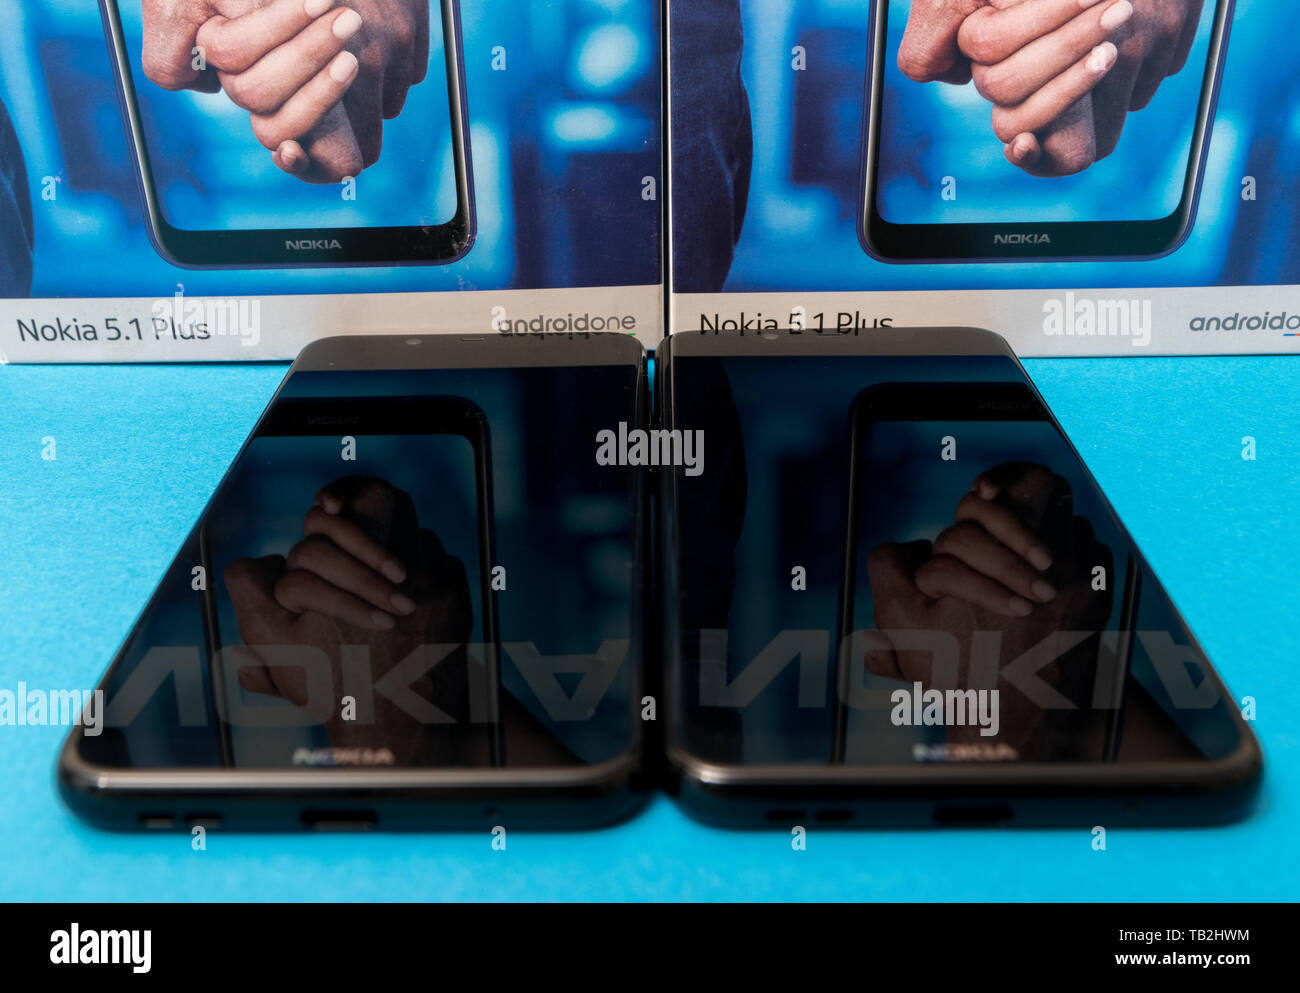 Cluj, Romania - May 13, 2019: Nokia smartphone made by Nokia Corporation, a Finnish multinational telecommunications, information technology, and cons Stock Photo